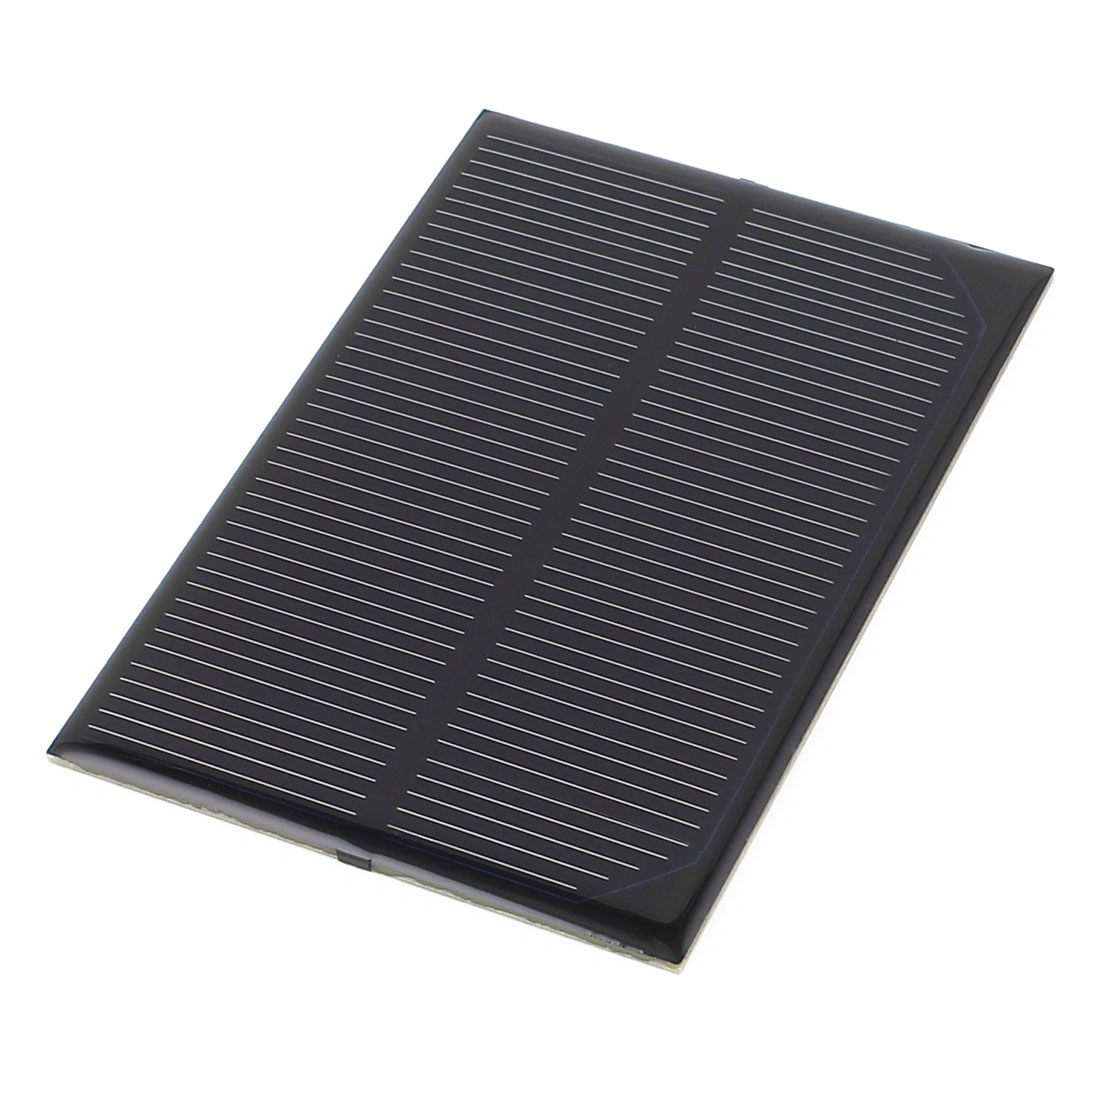 5V 1W DIY Polycrystallinesilicon Solar Panel Power Cell Battery Charger 99mm x 69mm